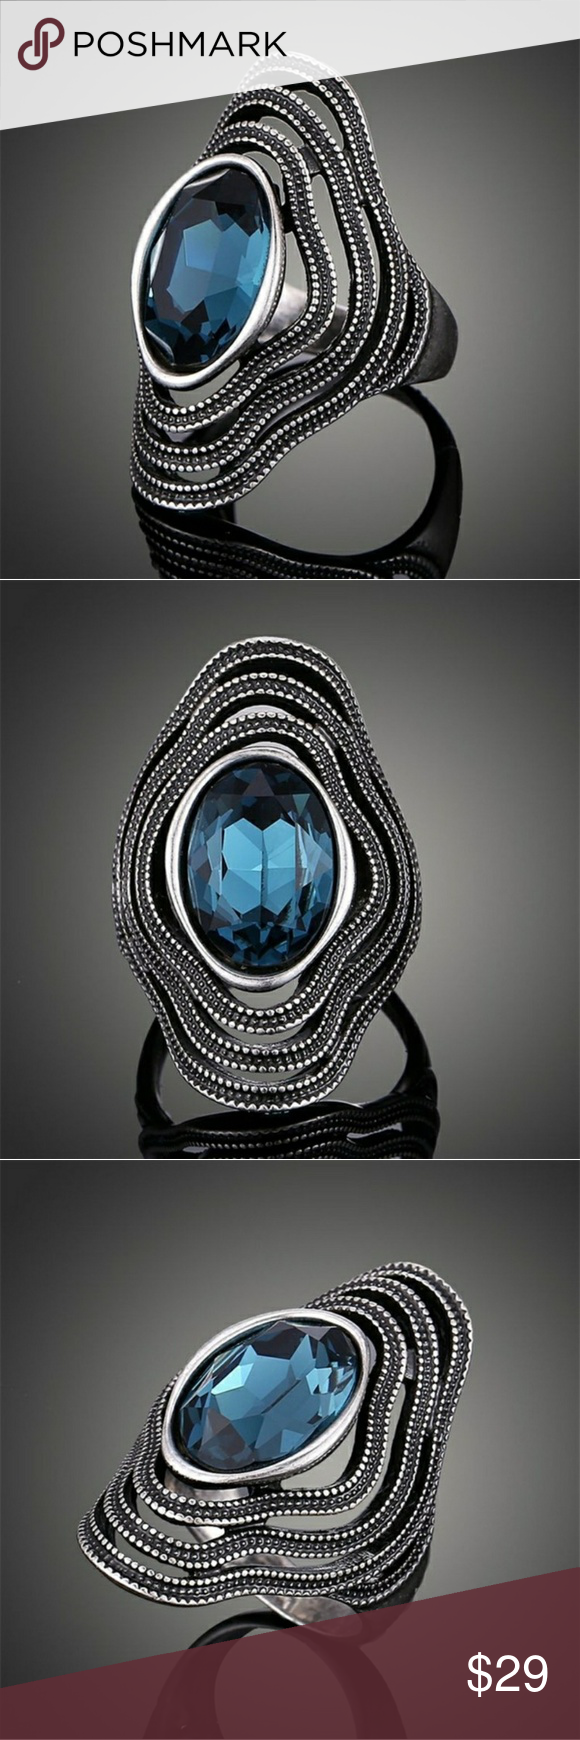 Teal Stone Statement Ring deep teal colored